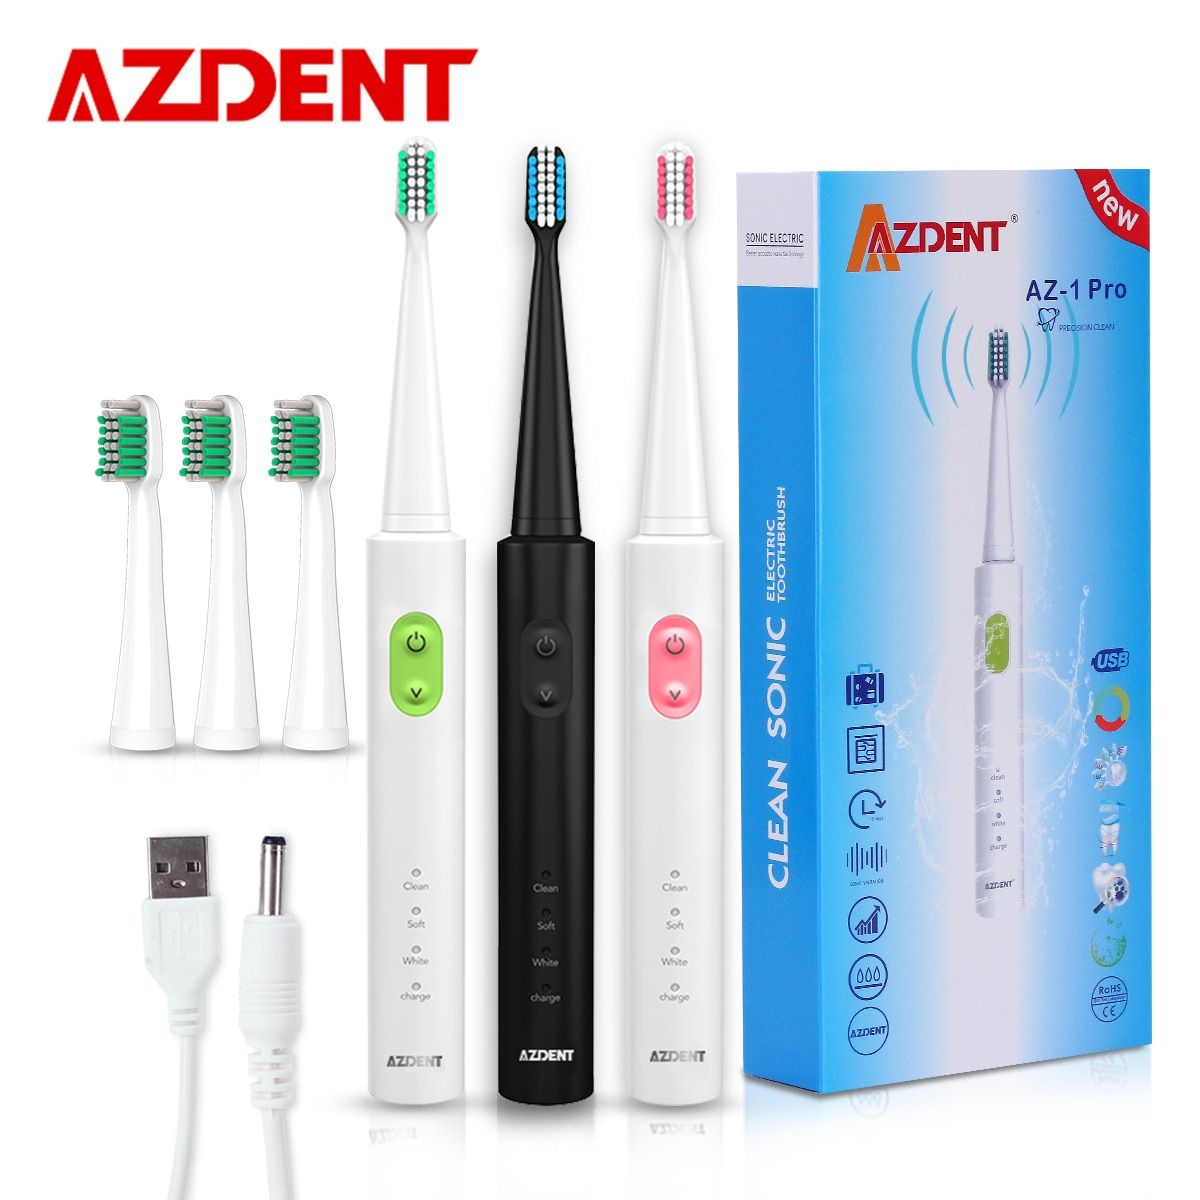 AZDENT New AZ-1 Pro Sonic <font><b>Electric</b></font> Toothbrush Rechargeable USB Charge 4 Pcs Replaceable Heads Timer Teeth Tooth Brush Waterproof